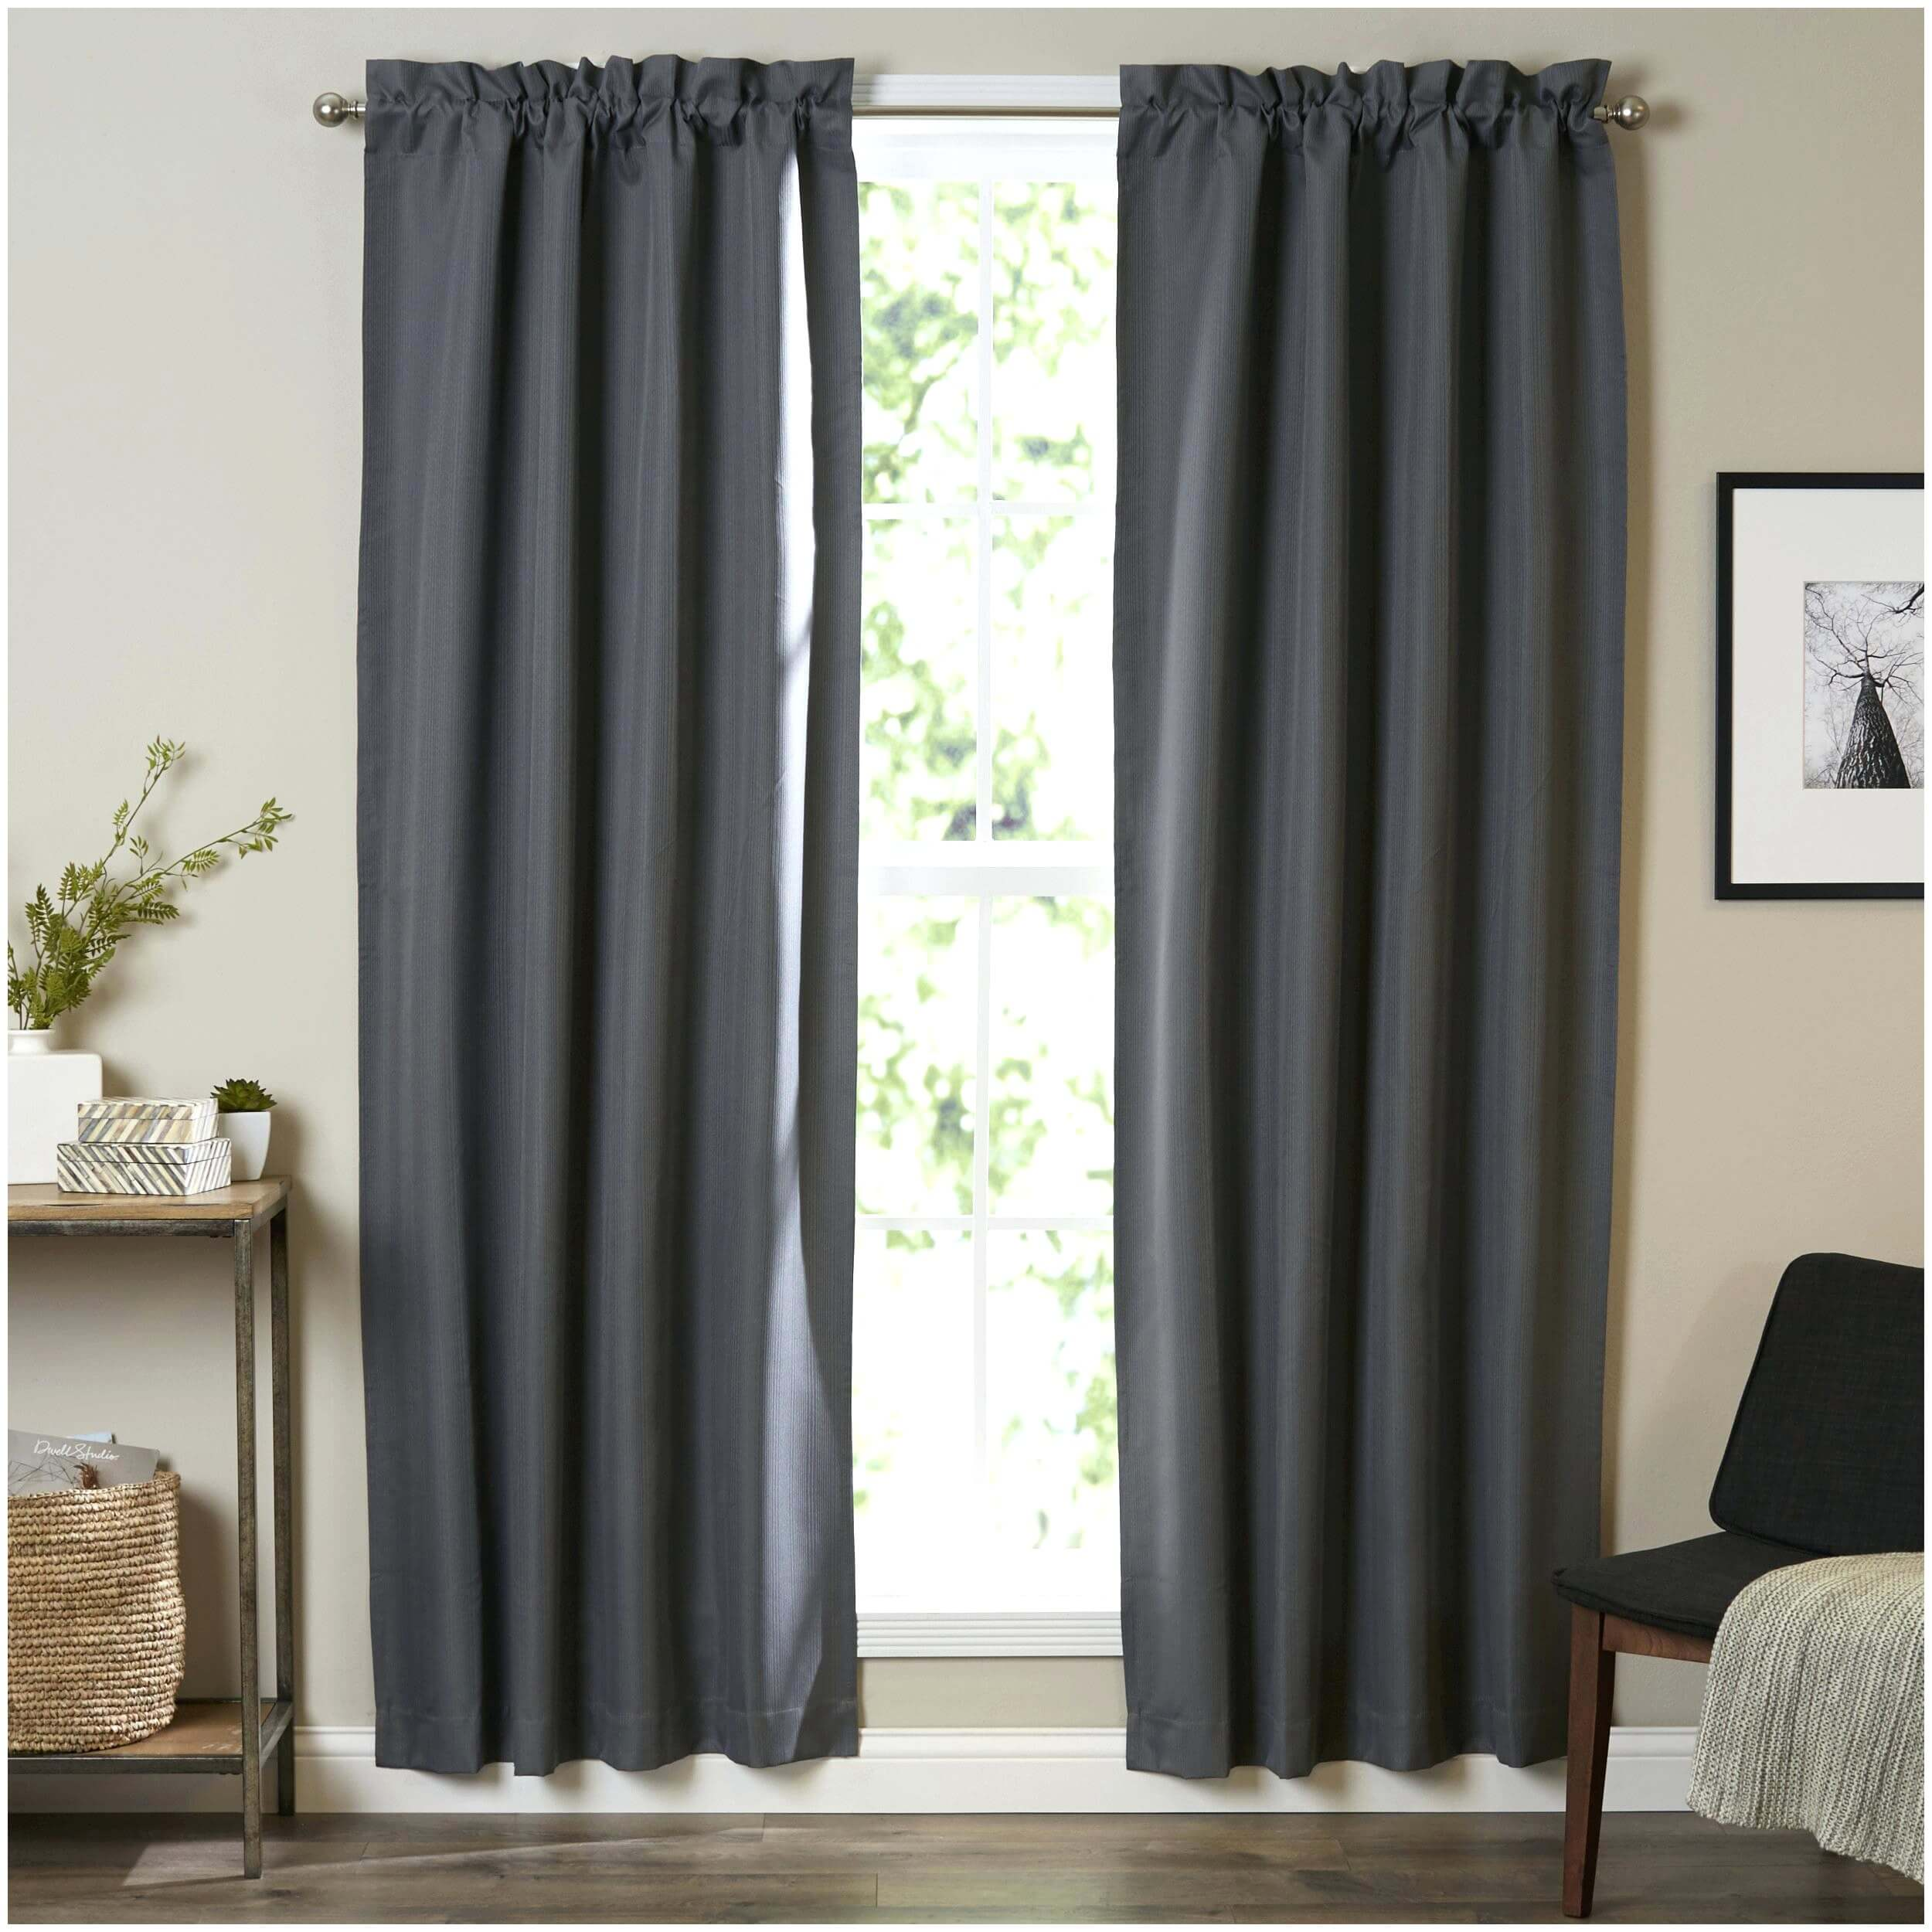 54 Inch Curtain Panels